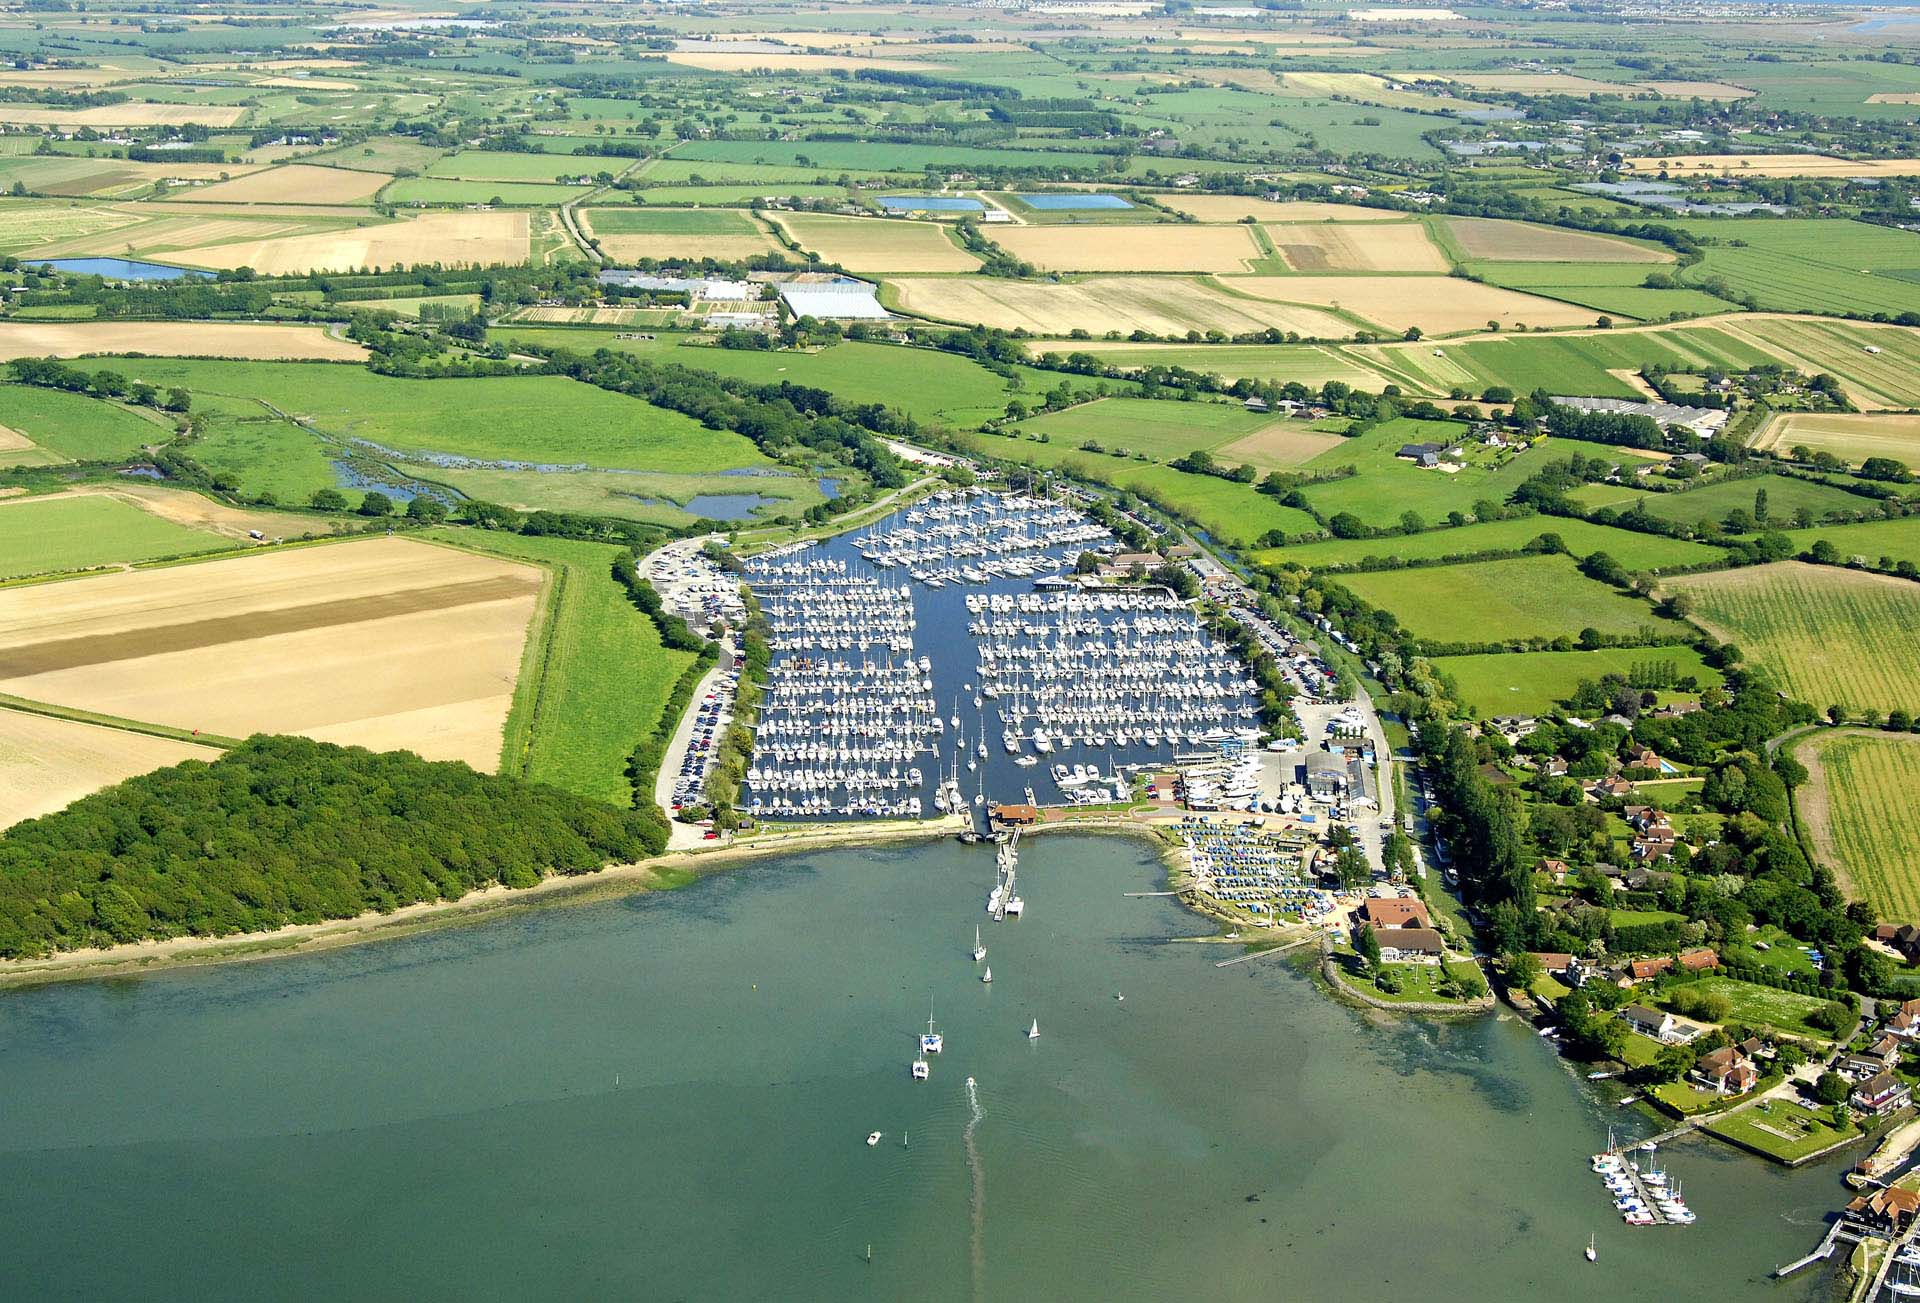 Luxury Self Catering - An aerial view of Chichester Harbour with Boats and Fields